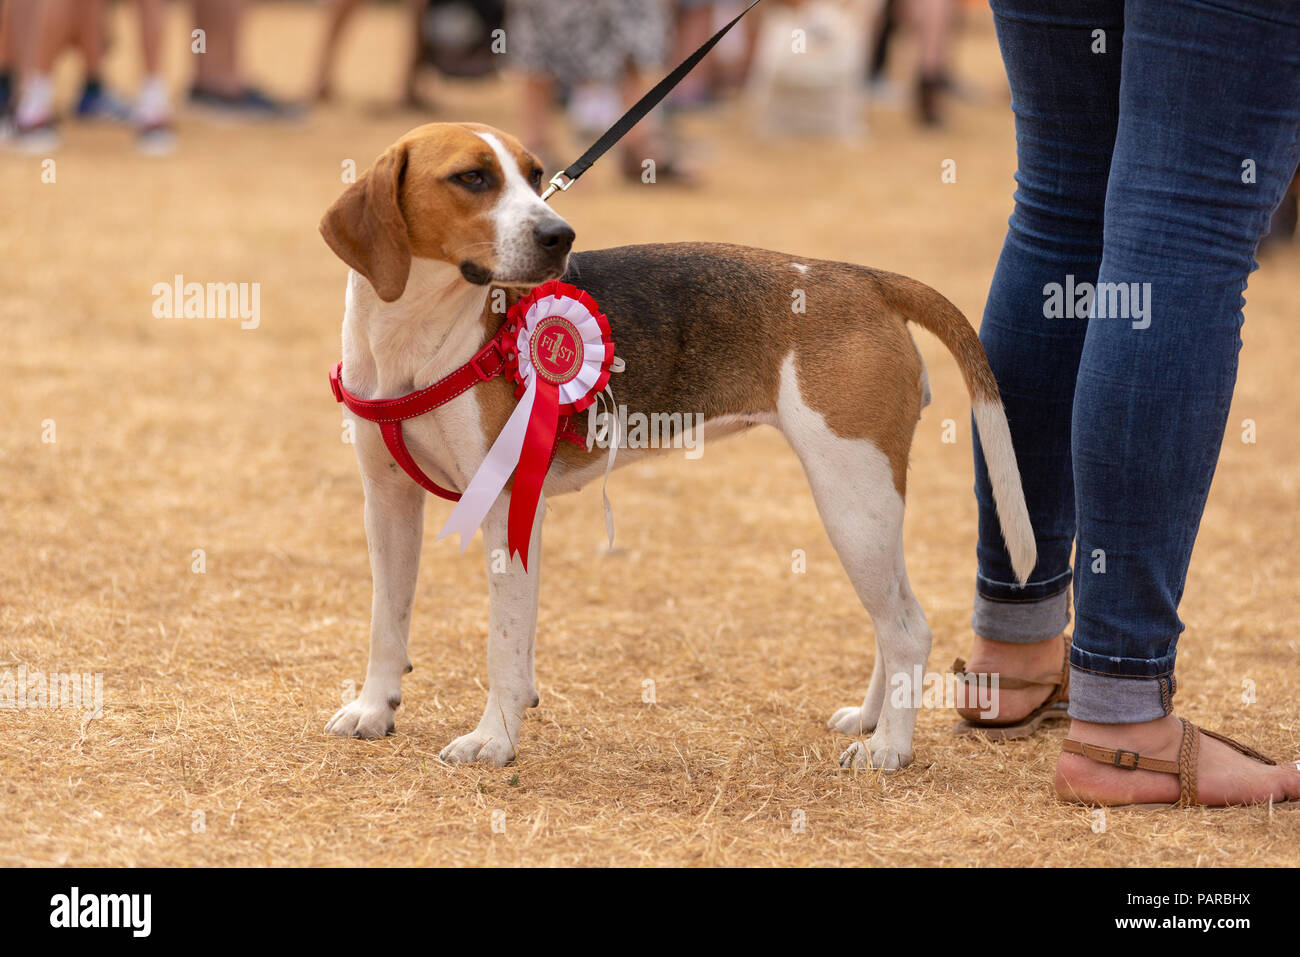 First Prize Rosette Stock Photos & First Prize Rosette Stock Images